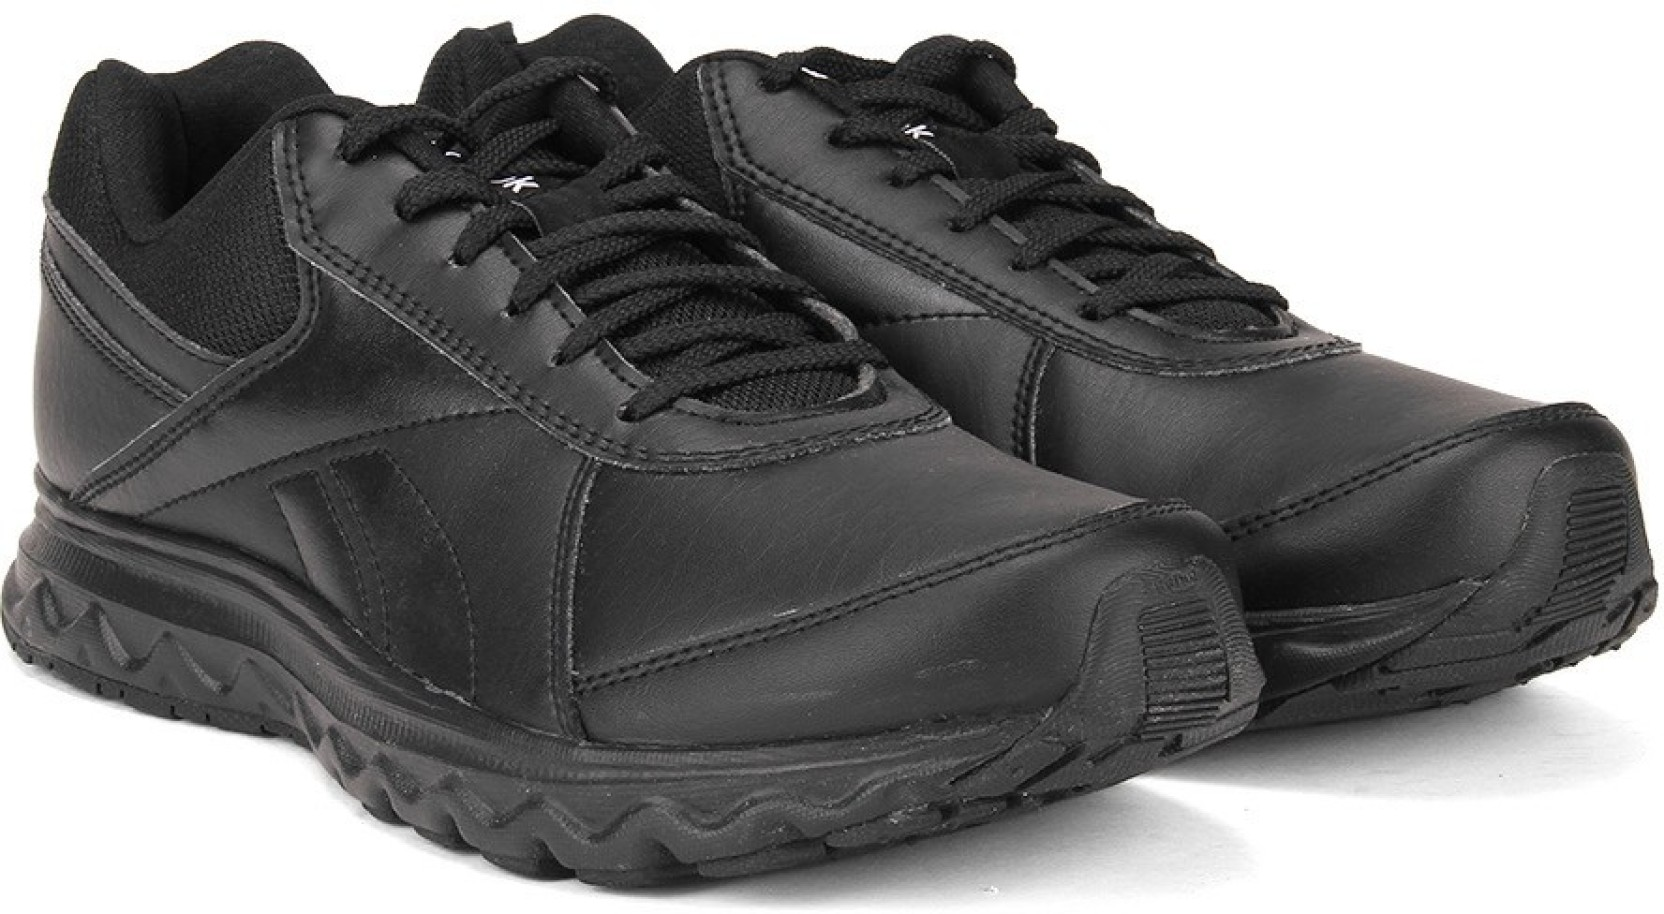 REEBOK SCHOOL SPORTS Running Shoes For Men - Buy BLACK Color REEBOK ... 7f9a270e3